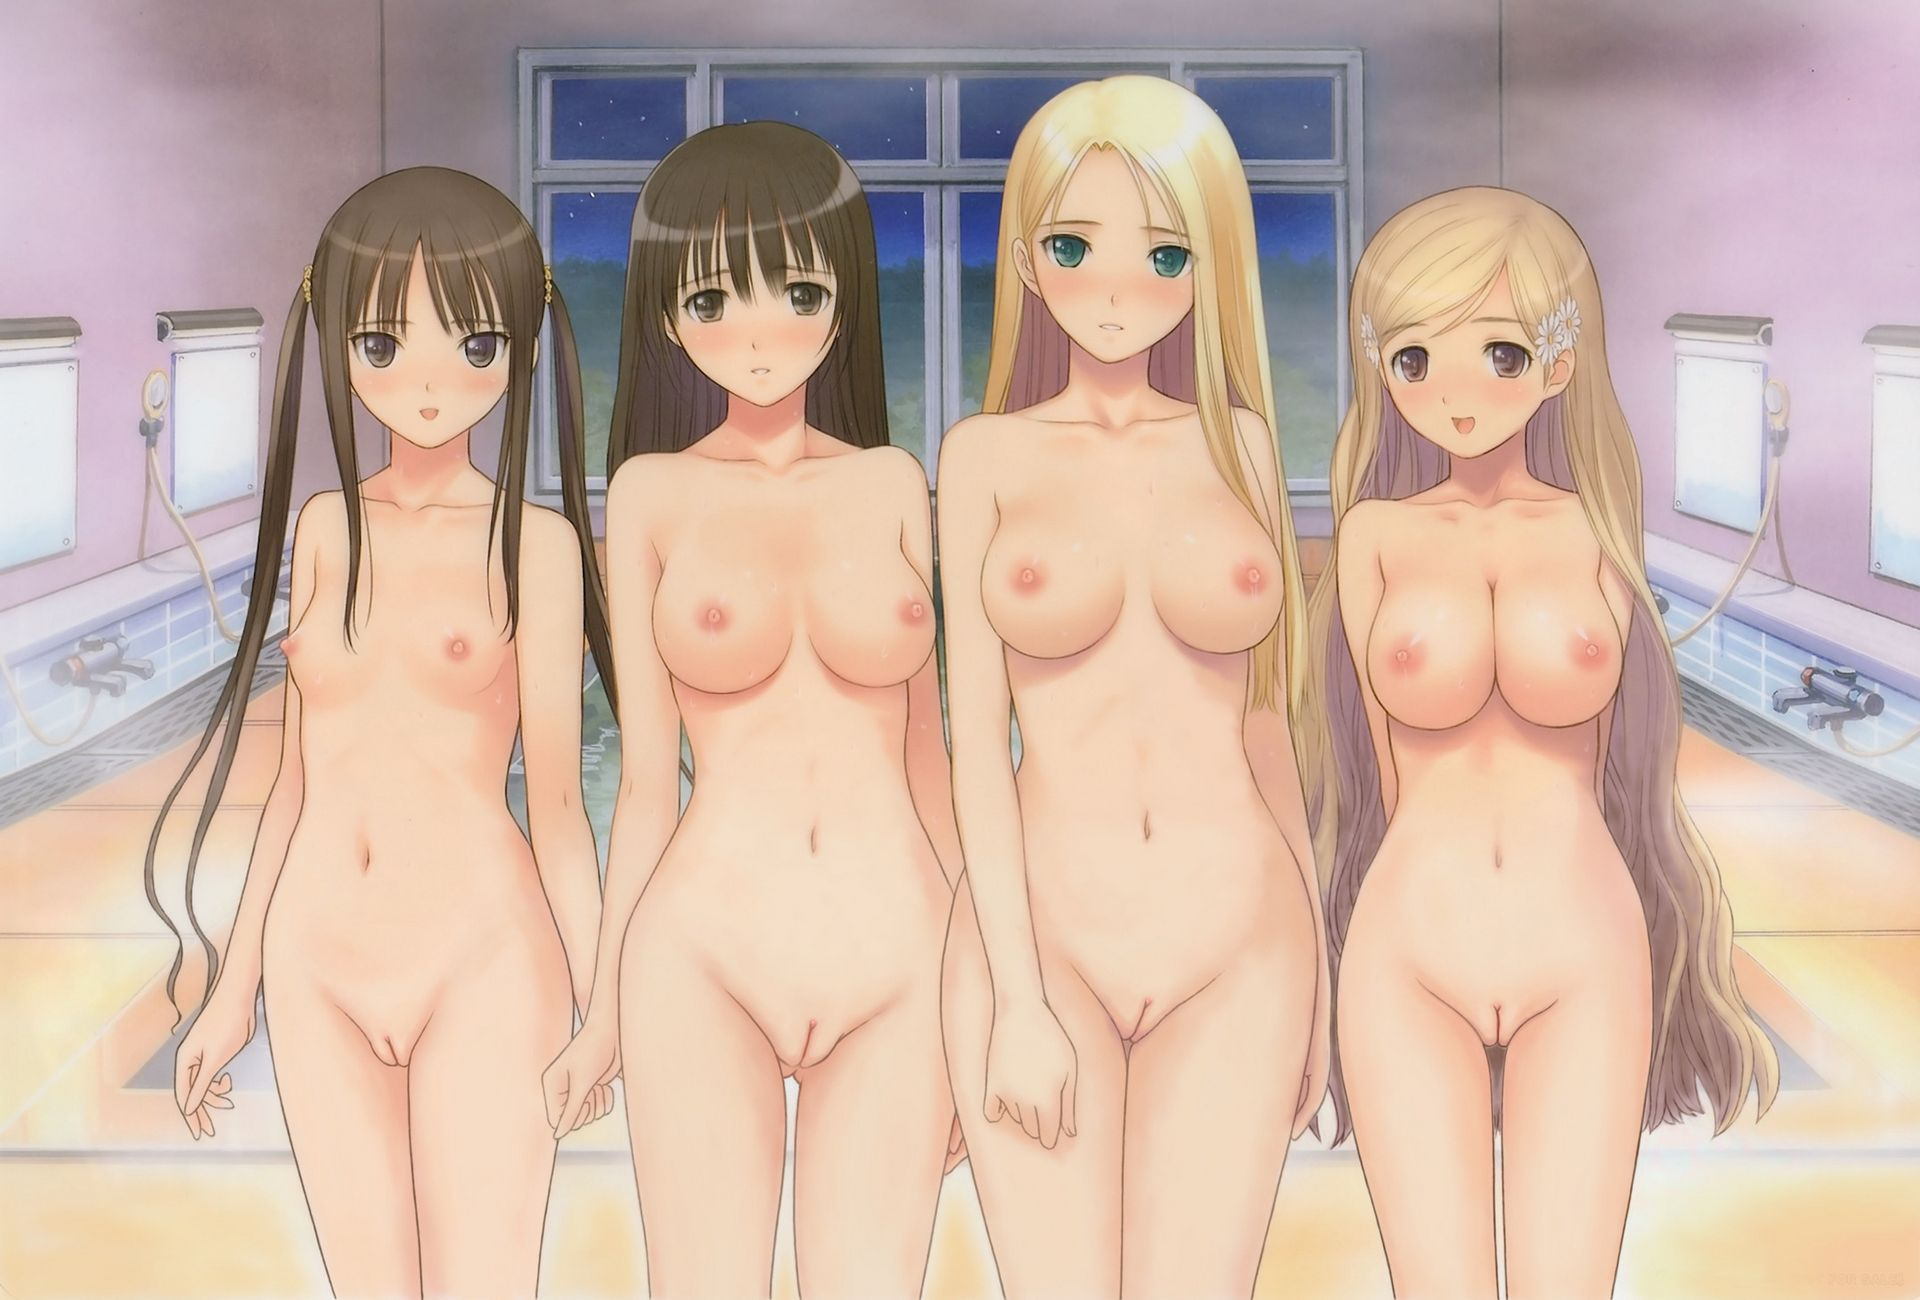 Necessary words... Anime bare breast